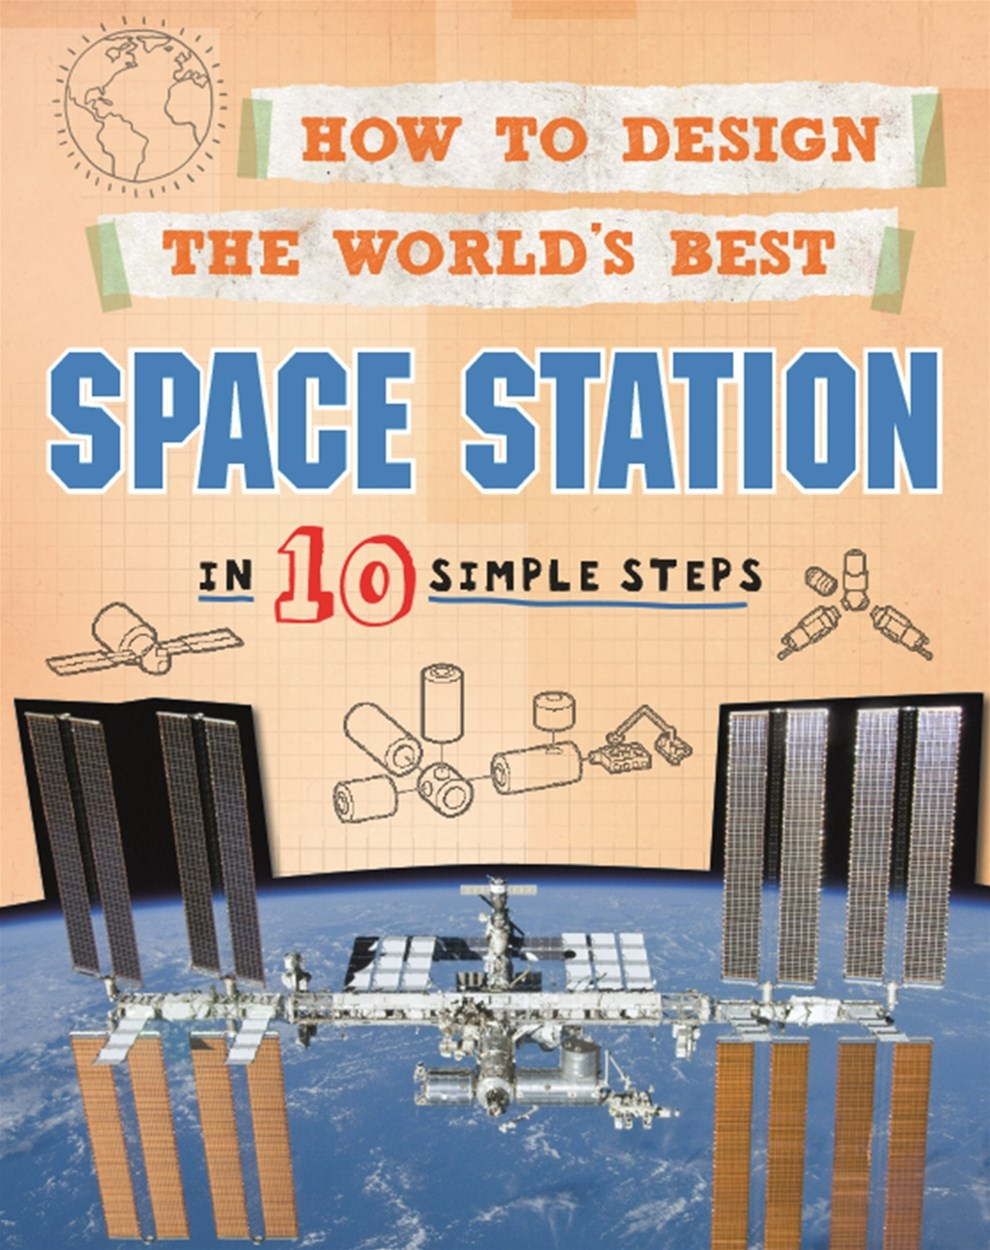 How to Design the World's Best: Space Station